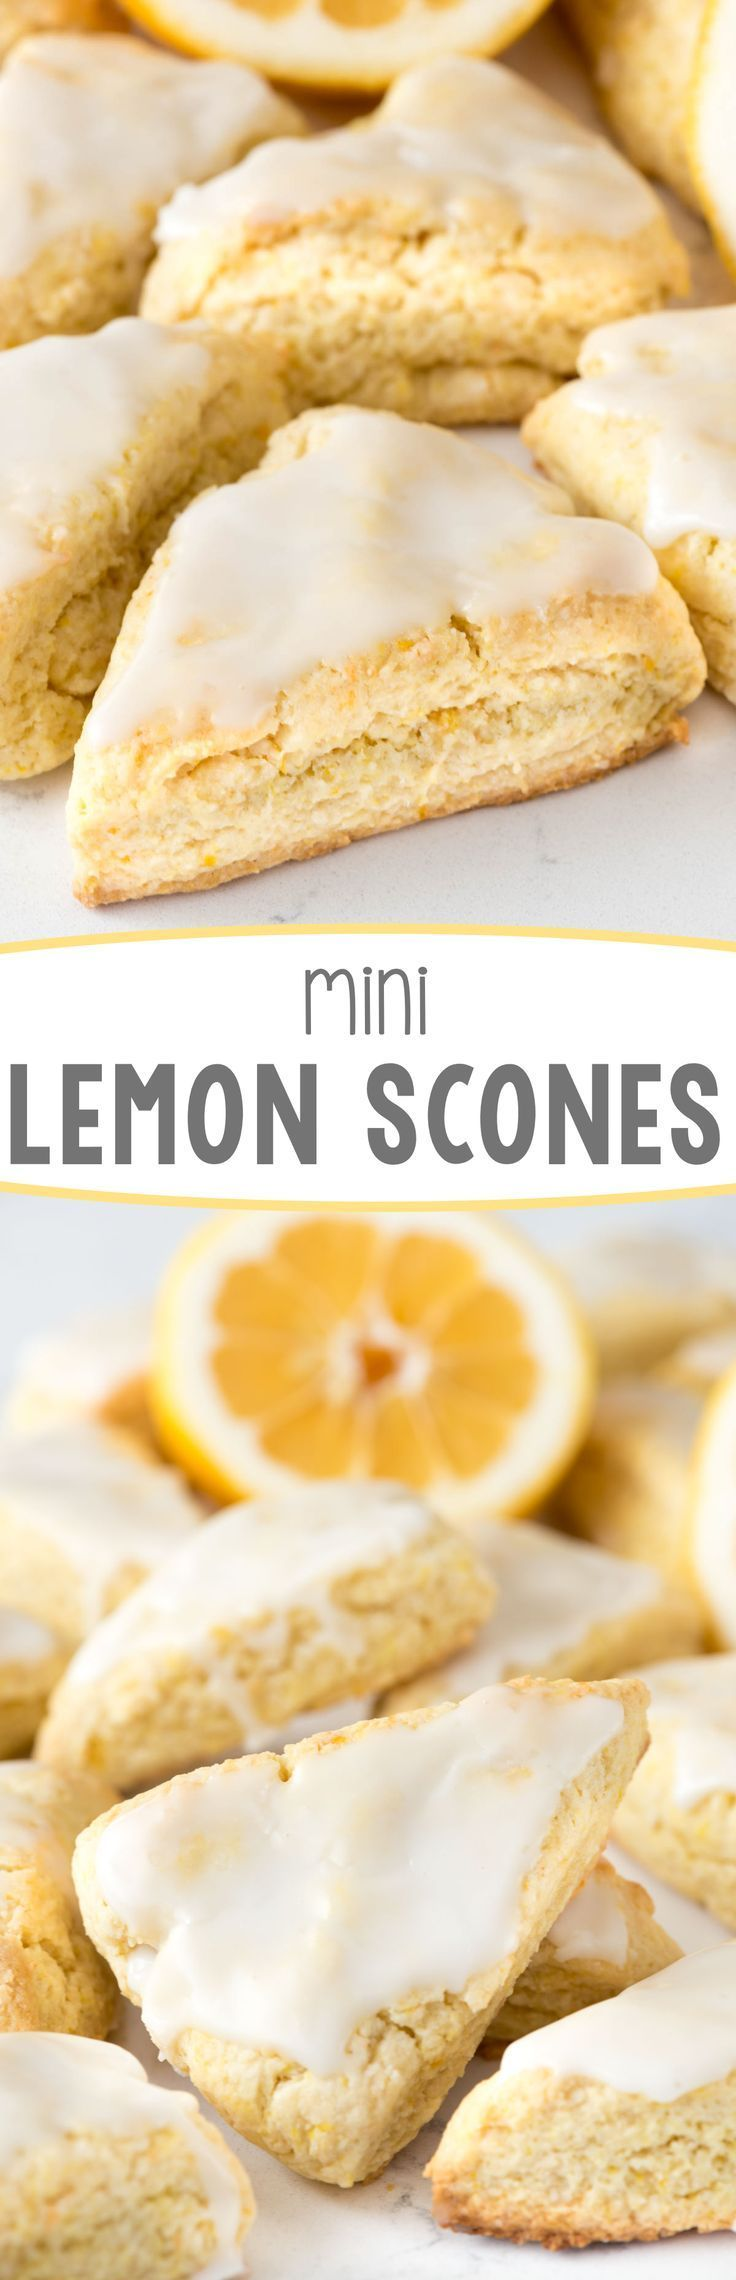 Mini Lemon Scones - this easy recipe stays soft for days! They're pillowy soft and FULL of lemon flavor, in the scone and in the glaze.